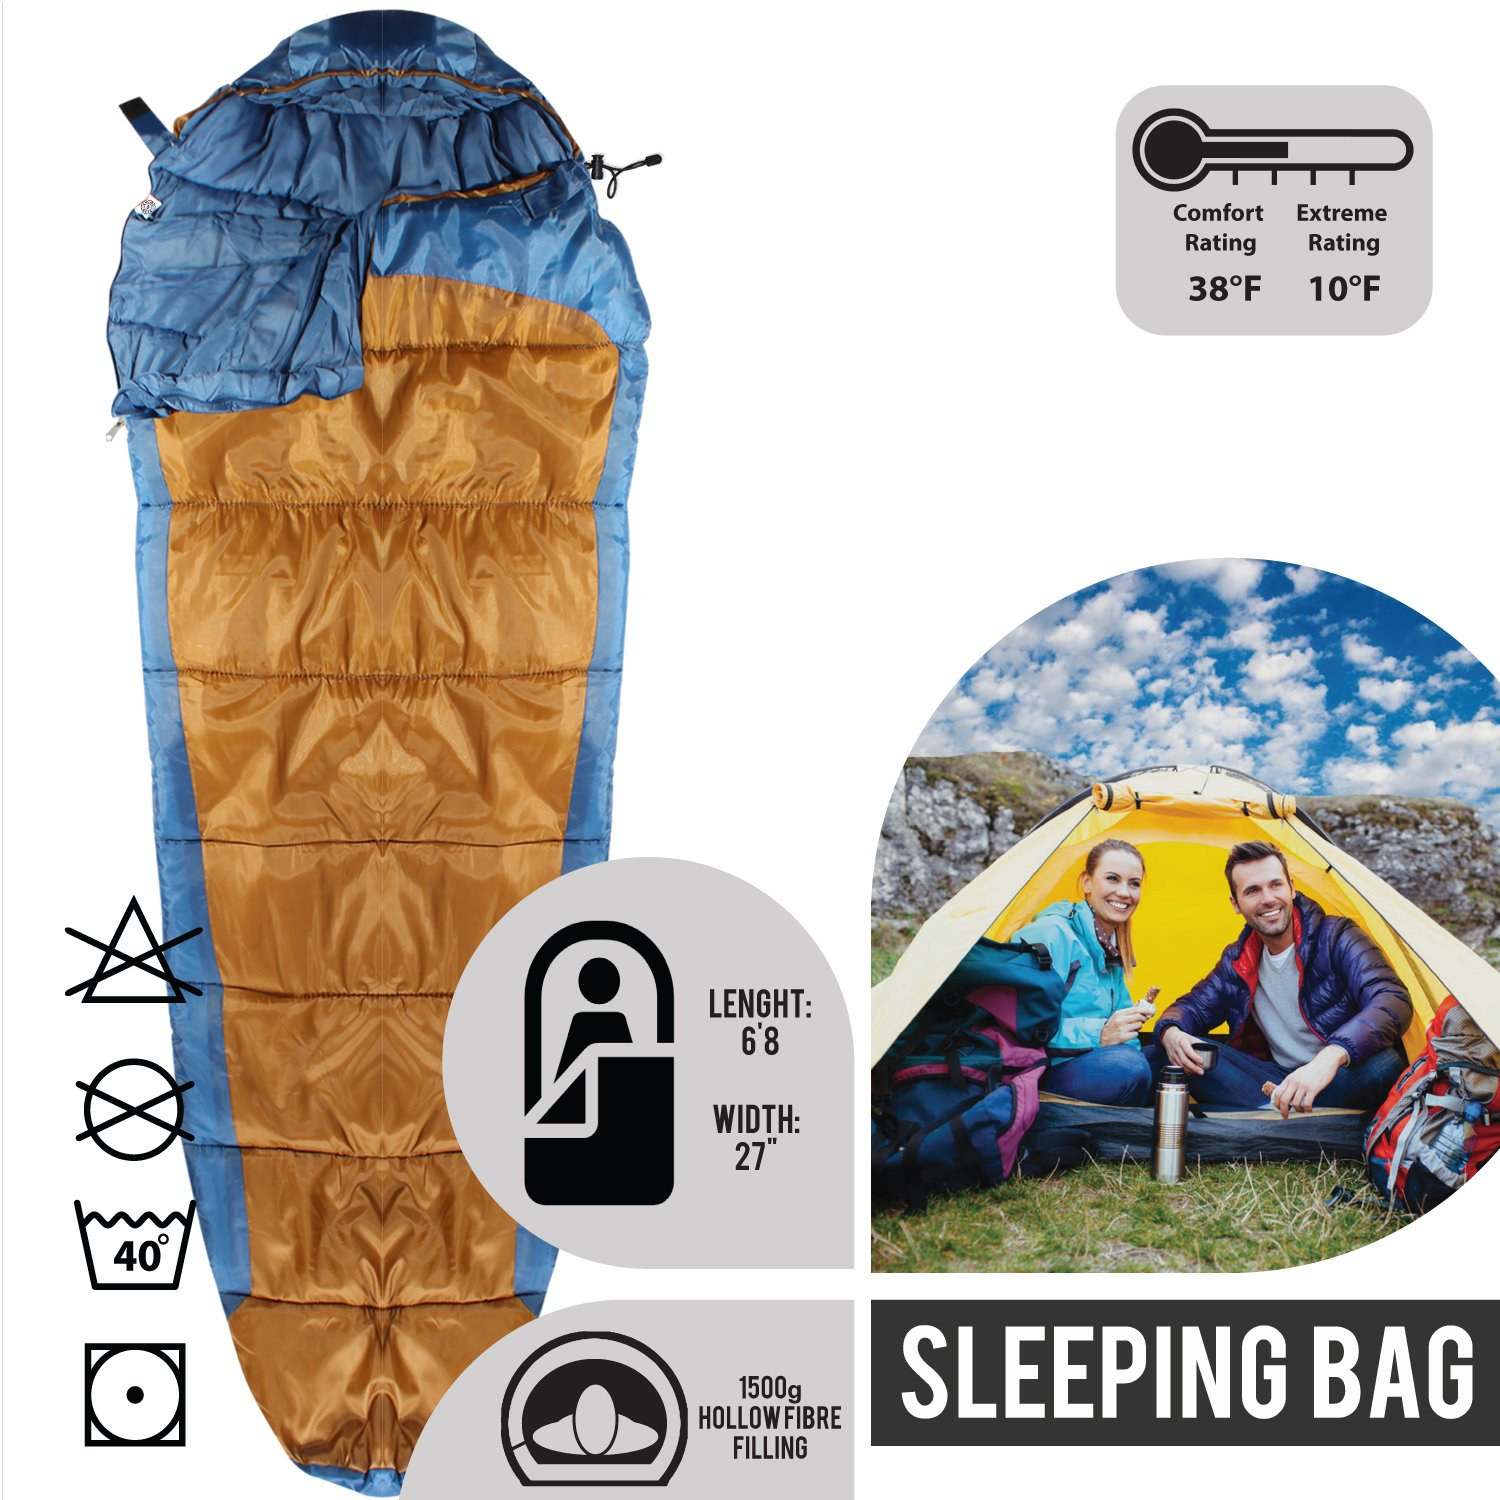 b065b4f921d4 Amazon.com : KHOMO GEAR - 3 Season - Mummy Sleeping Bag for Hiking ...